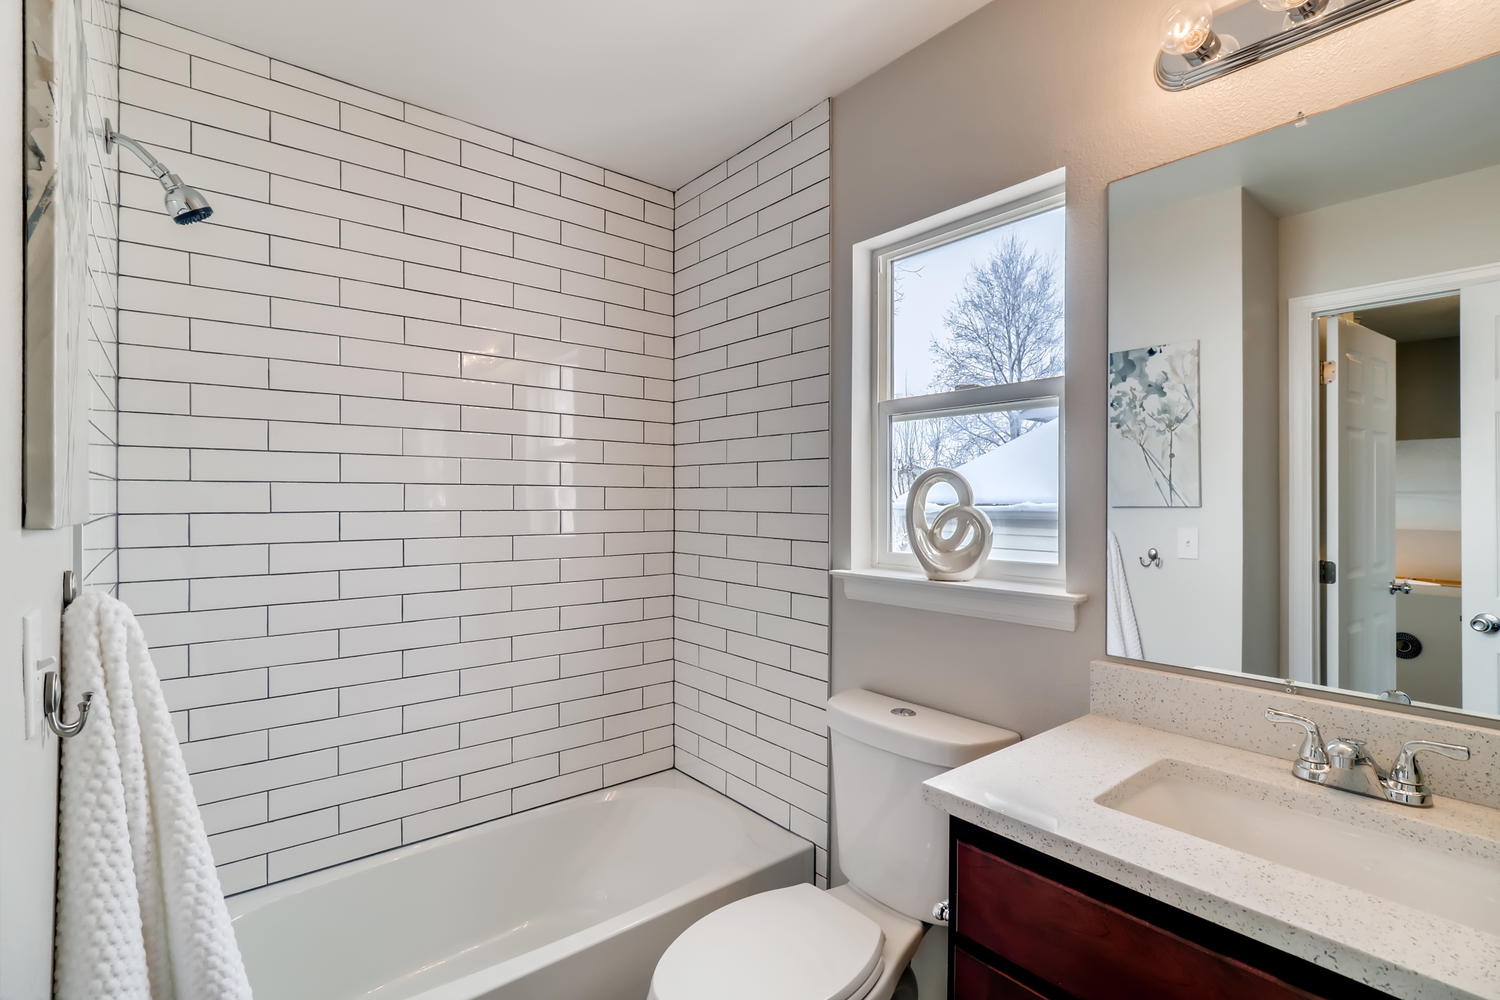 REAL ESTATE LISTING: 1902 Fountain Court Shared Bath